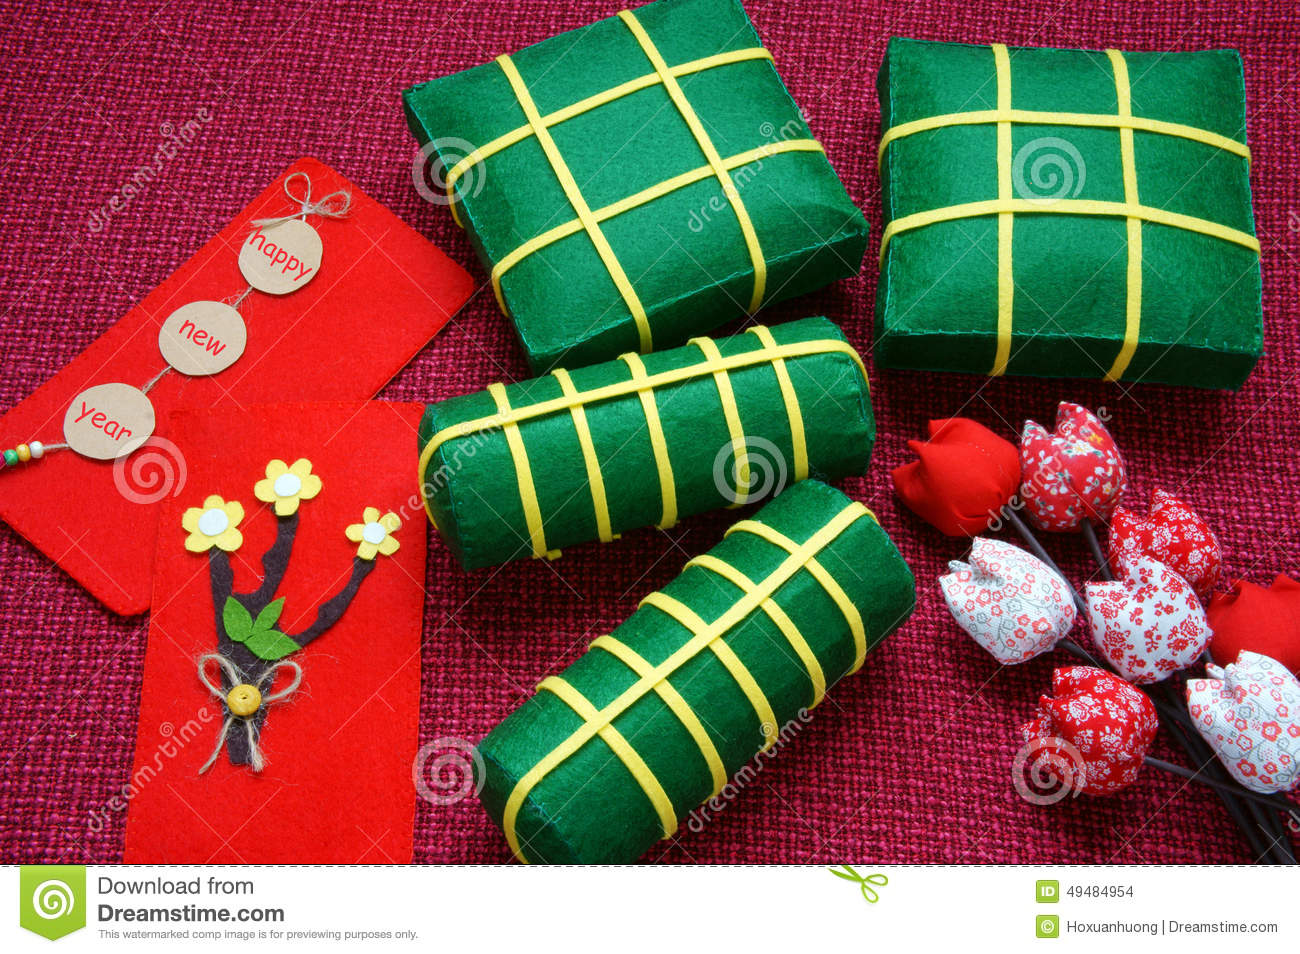 vietnamese traditional holiday tet essay Vietnam culture  the traditional vietnamese worshipped  people believe that the first person who visits their home during tet holiday has a bearing on.